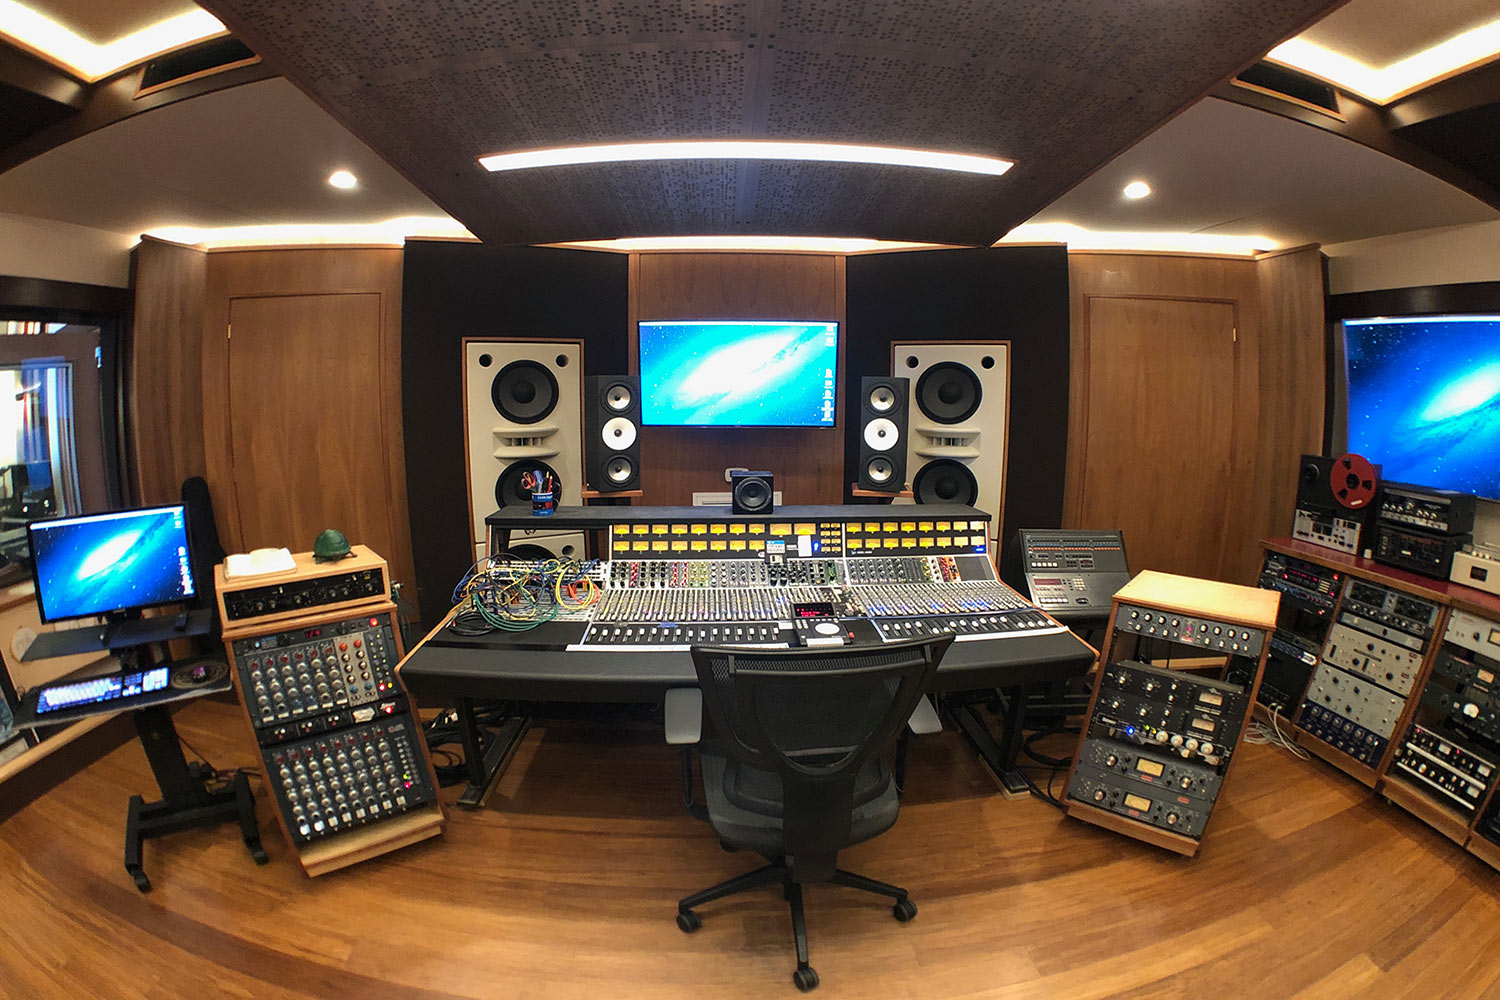 Gear guru studio owner PK Pandey Mad Oak Studios. Beautiful Control Room with Symphonic Acoustics custom speakers. WSDG was the only recording studio design firm considered for this project. Control Room front view.